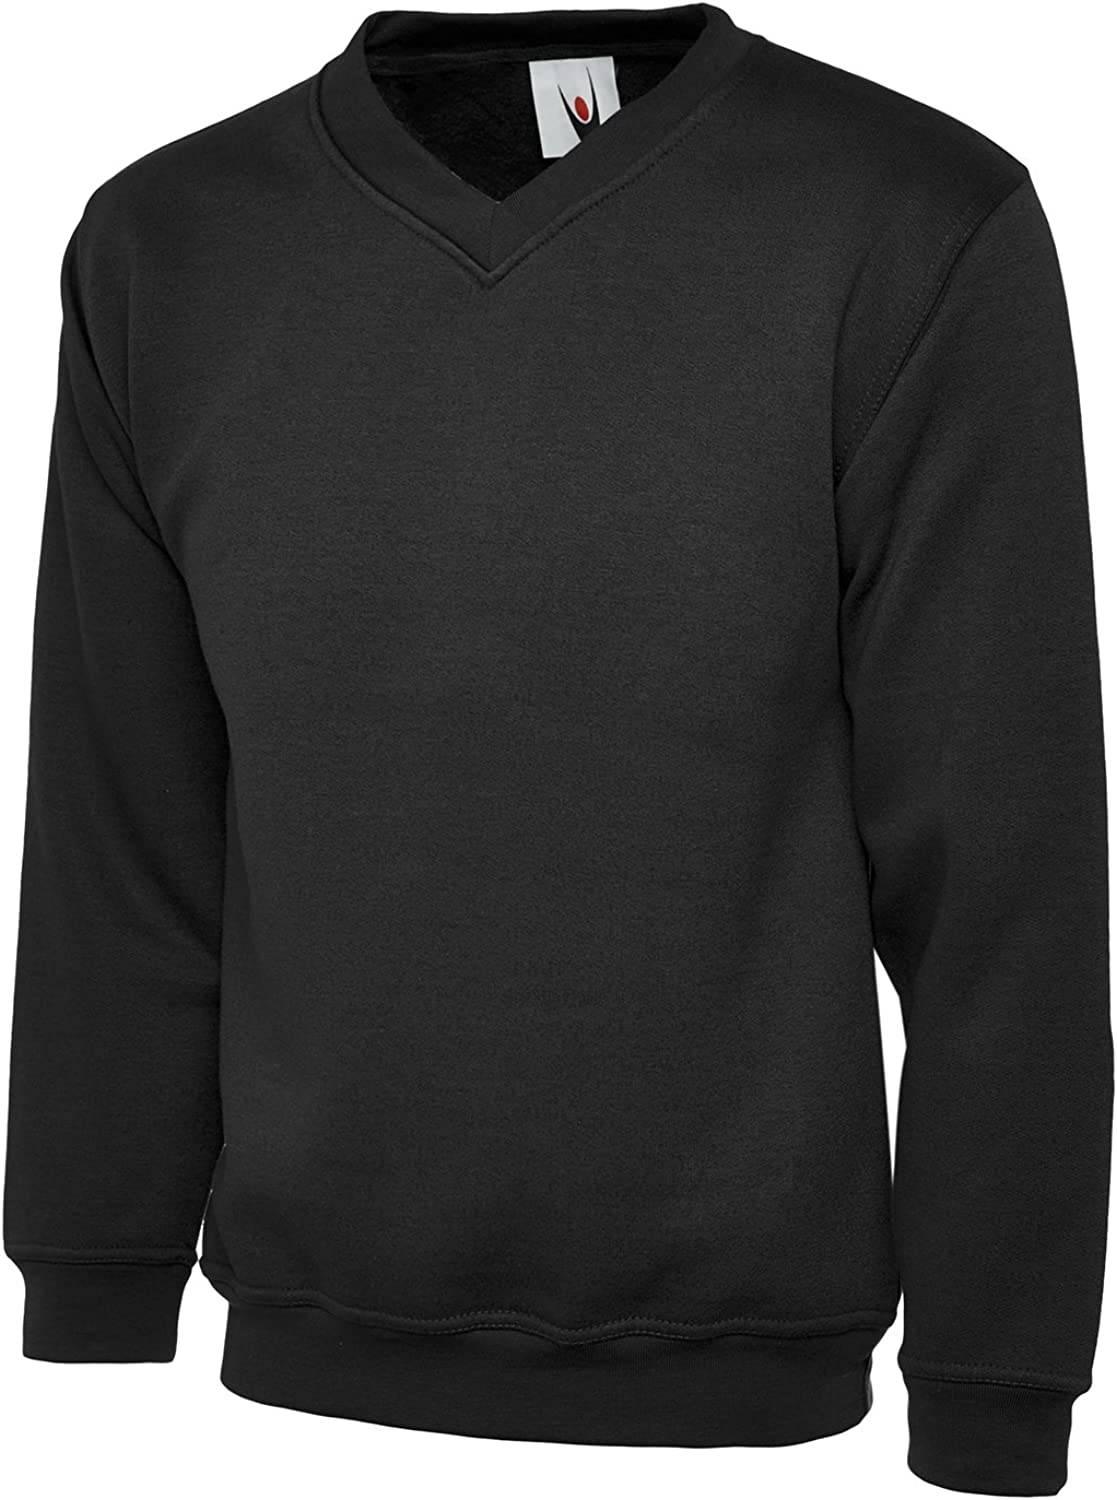 Uneek Clothing Mens Plain Premium V-Neck Sweatshirt XXX-Large Black